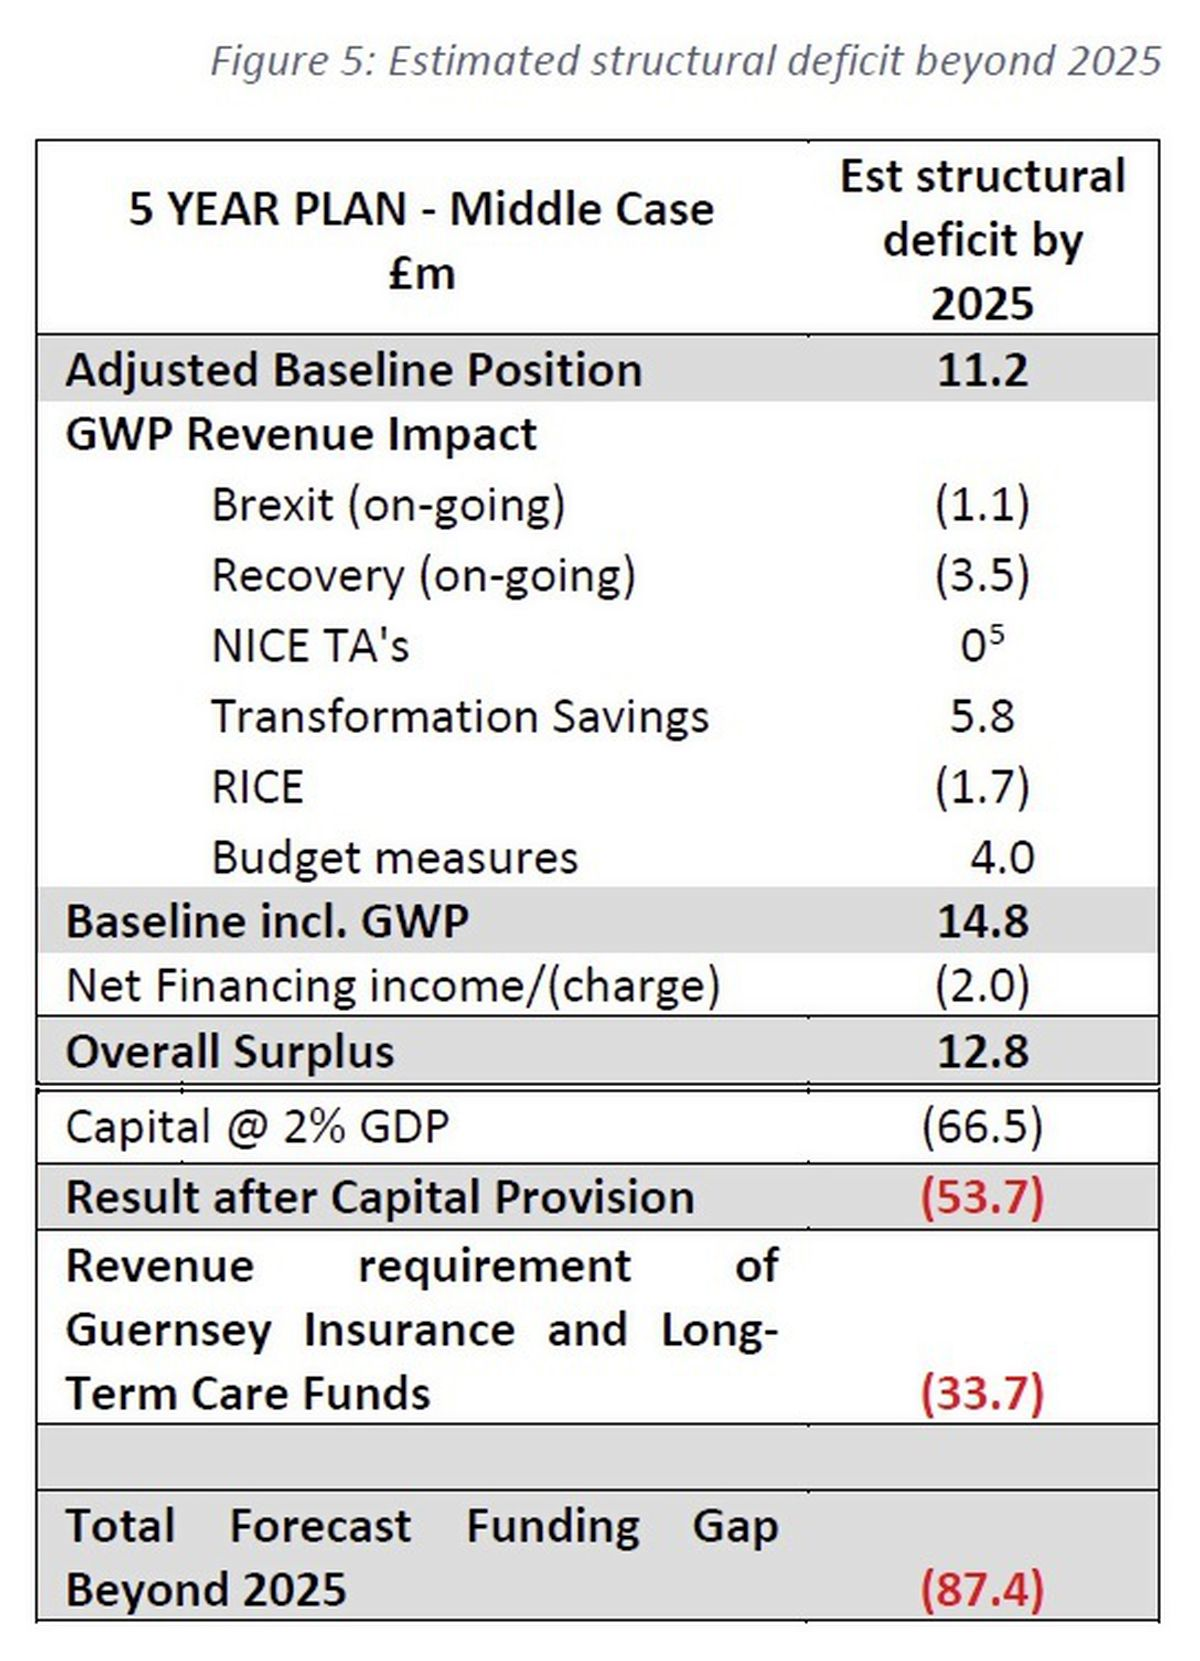 Figure 5. (Source: The Tax Review 2021)